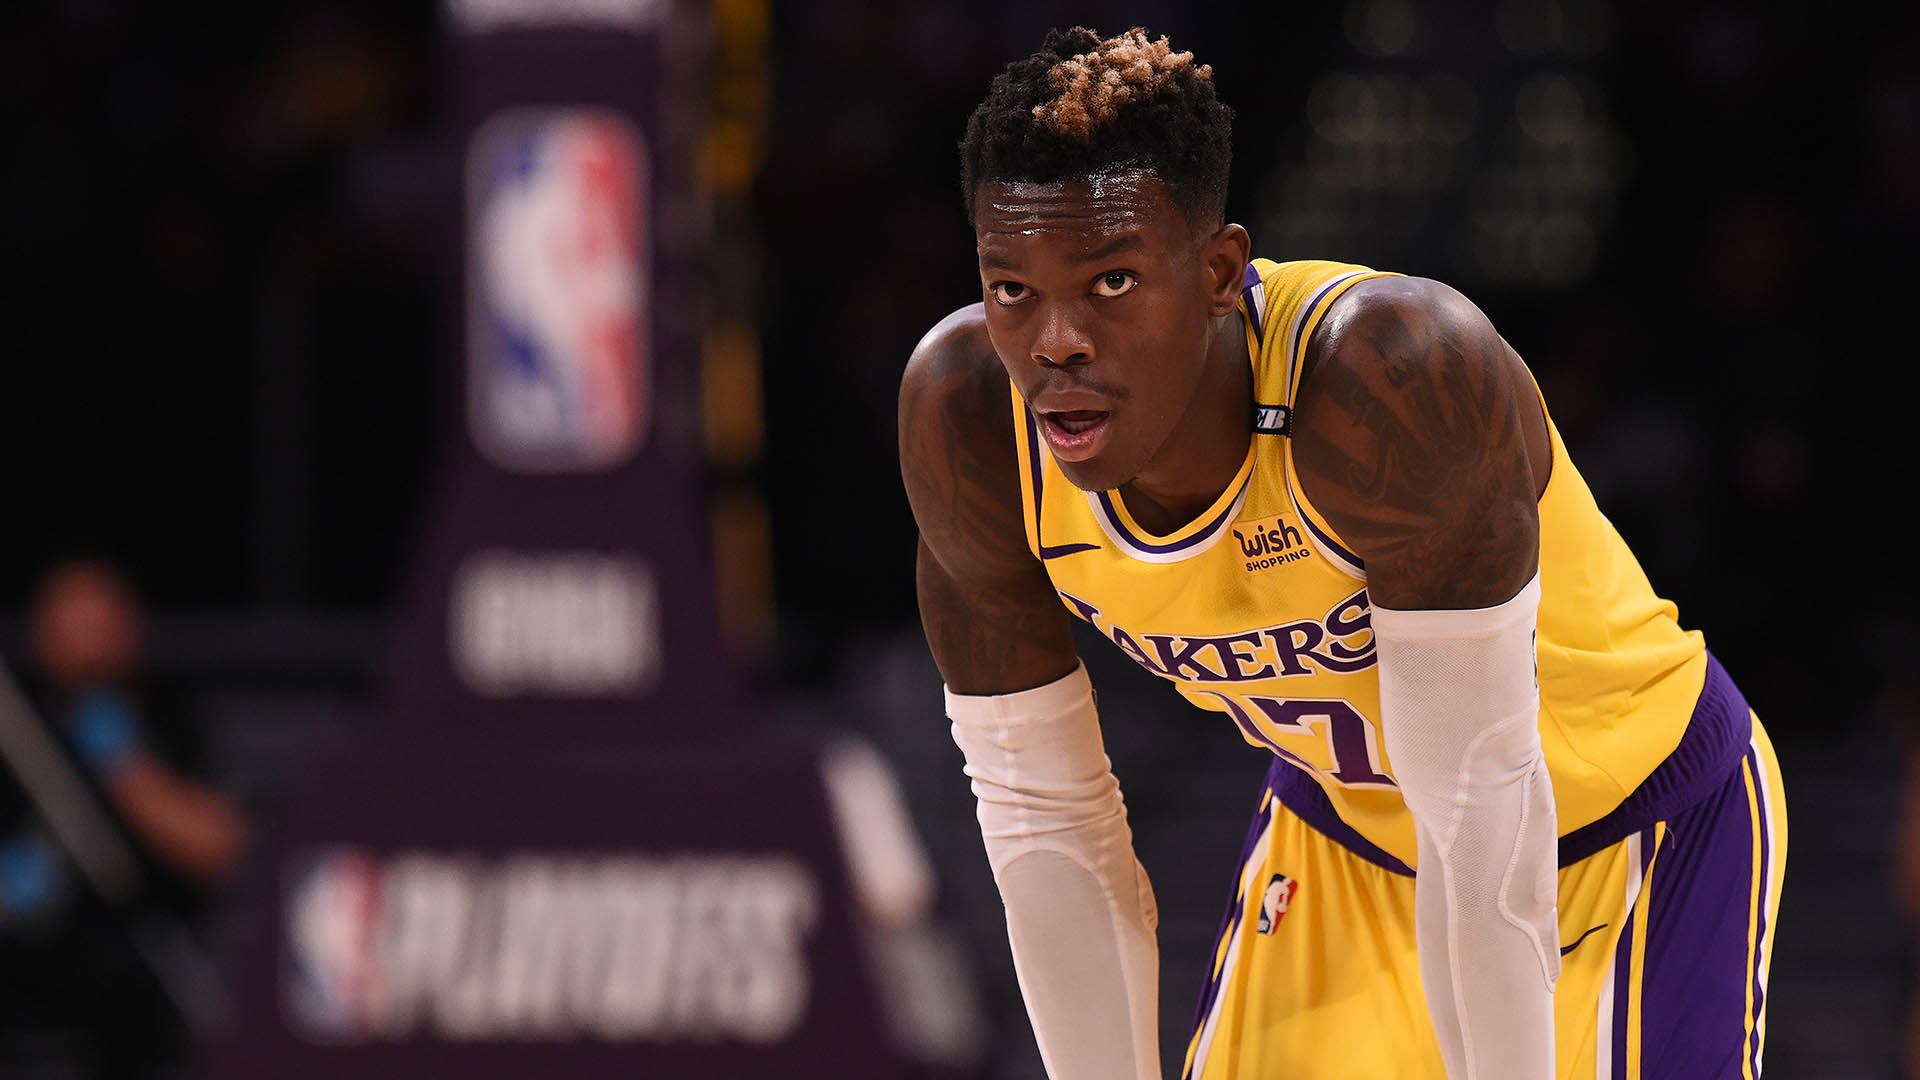 Dennis Schroder says he's signing 1-year deal with Boston Celtics